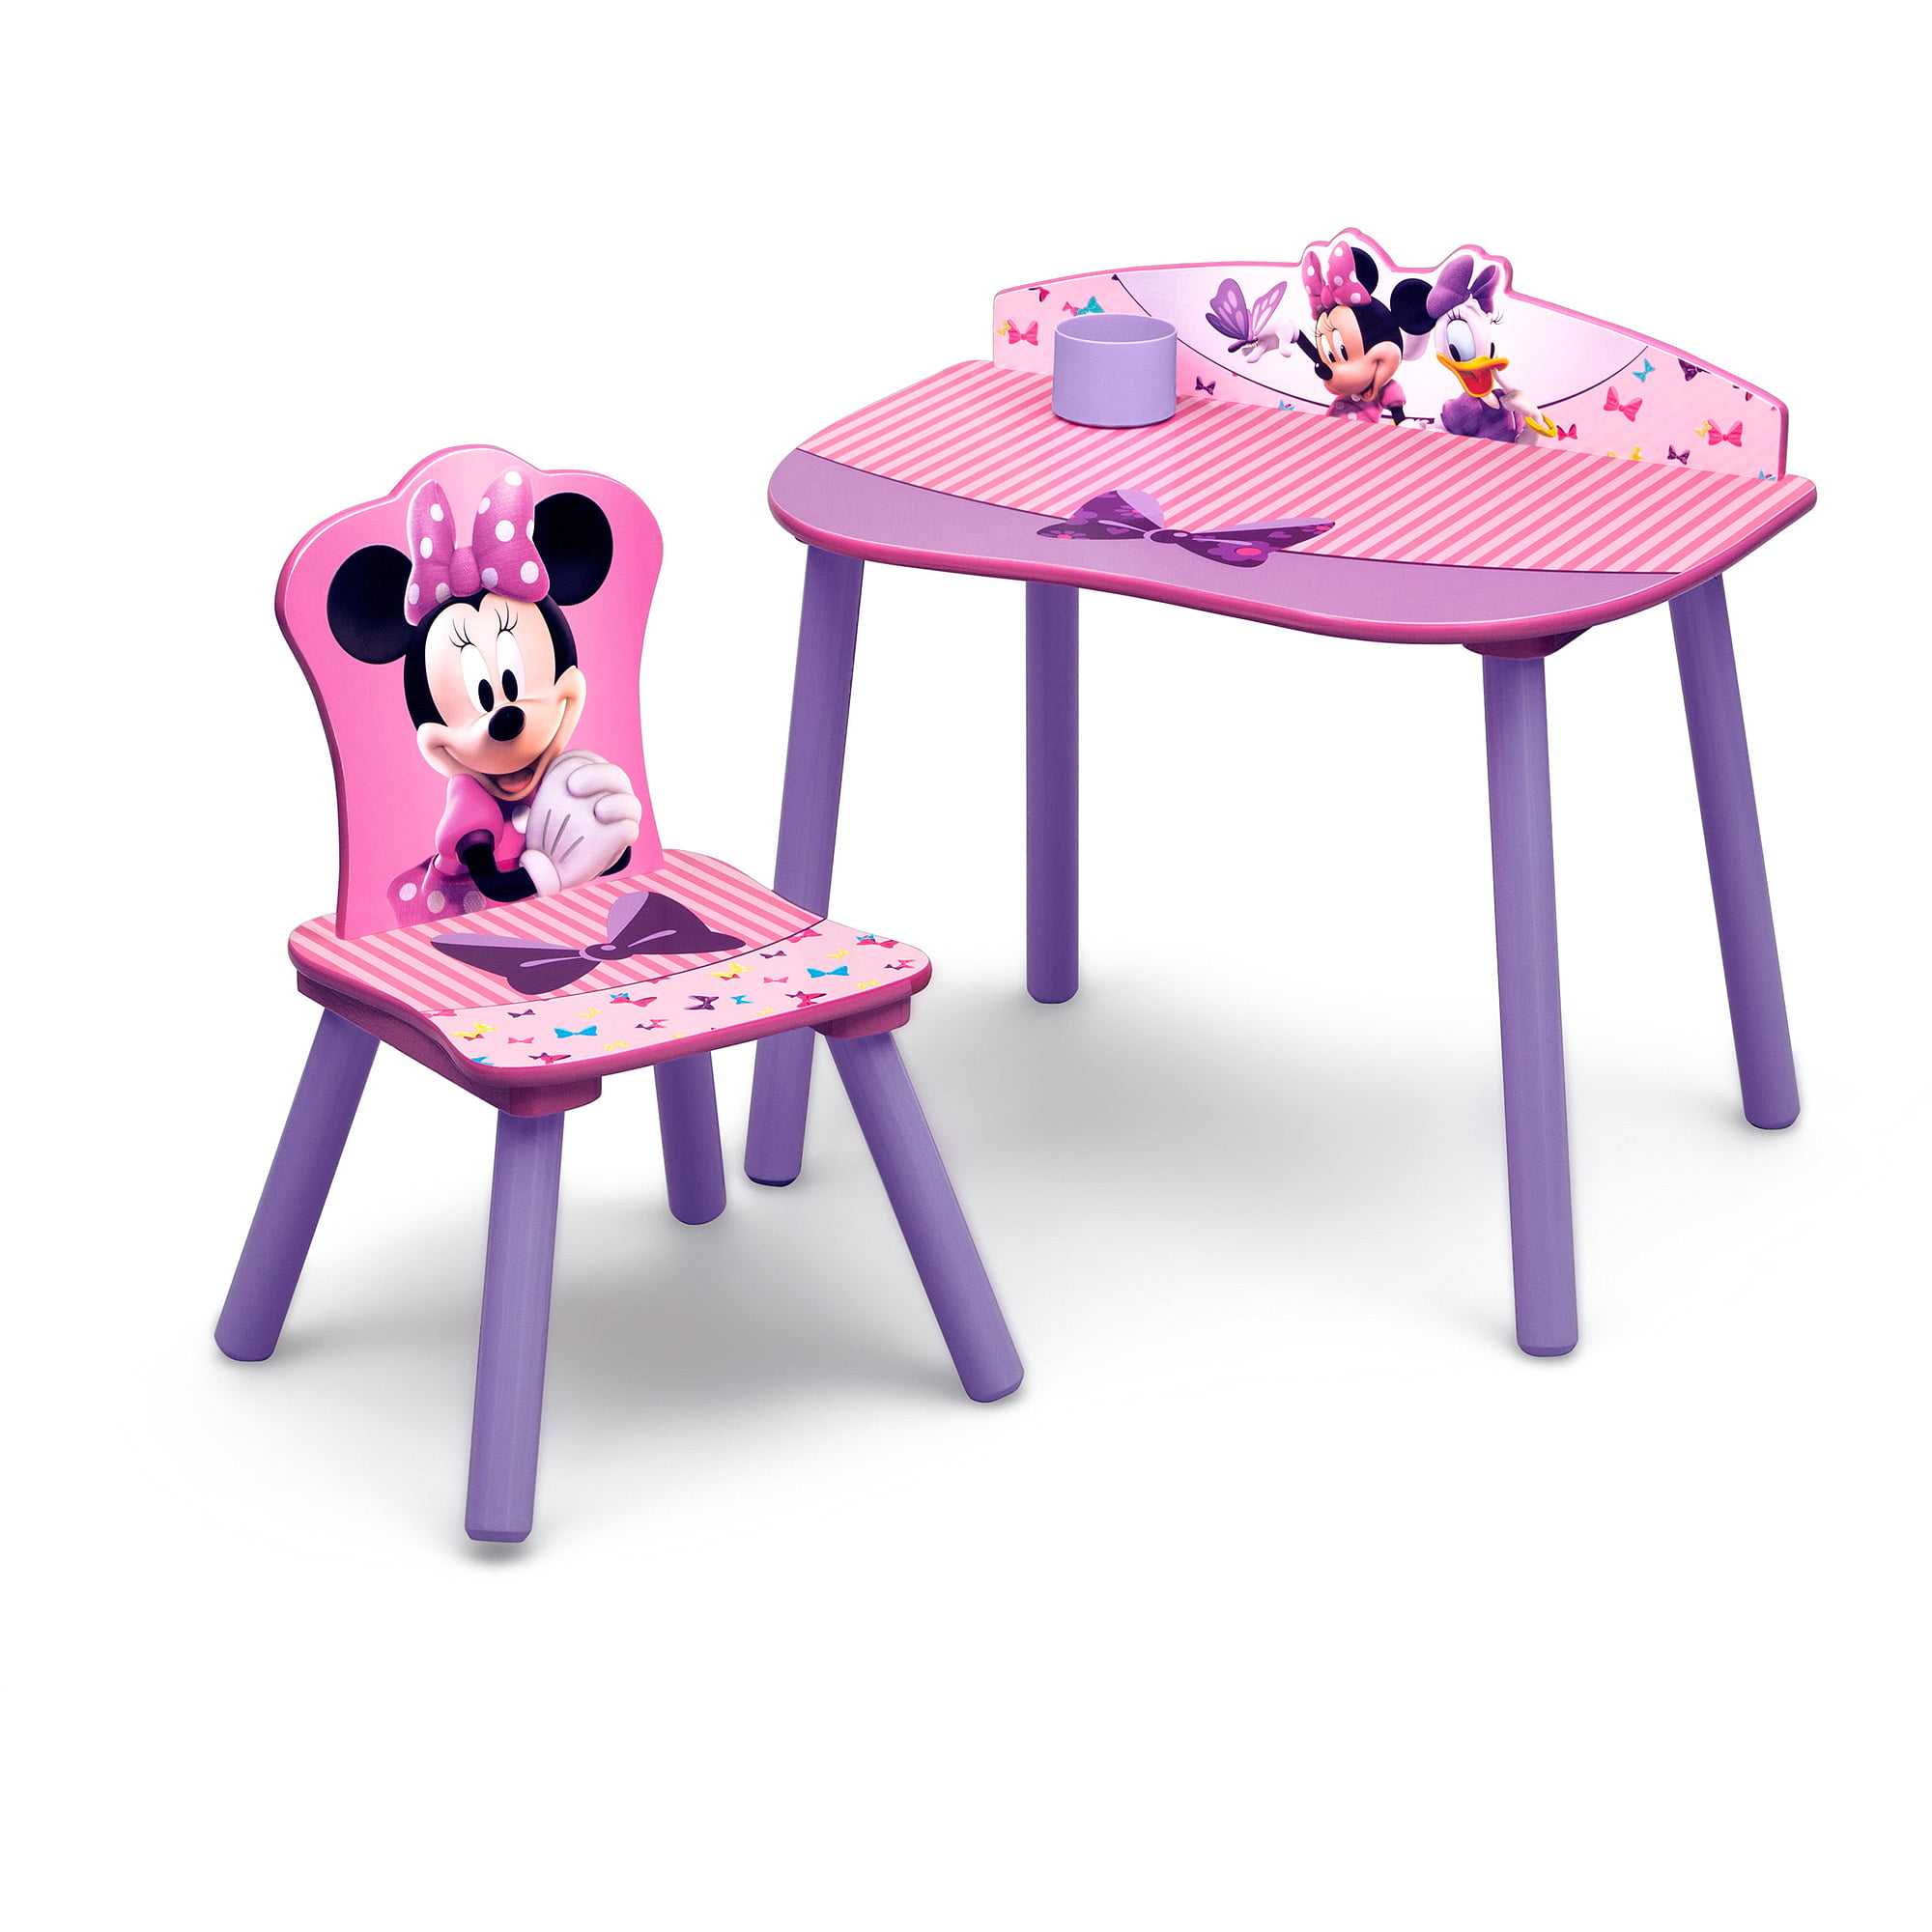 Disney Minnie Mouse Desk and Chair Set - Walmart.com